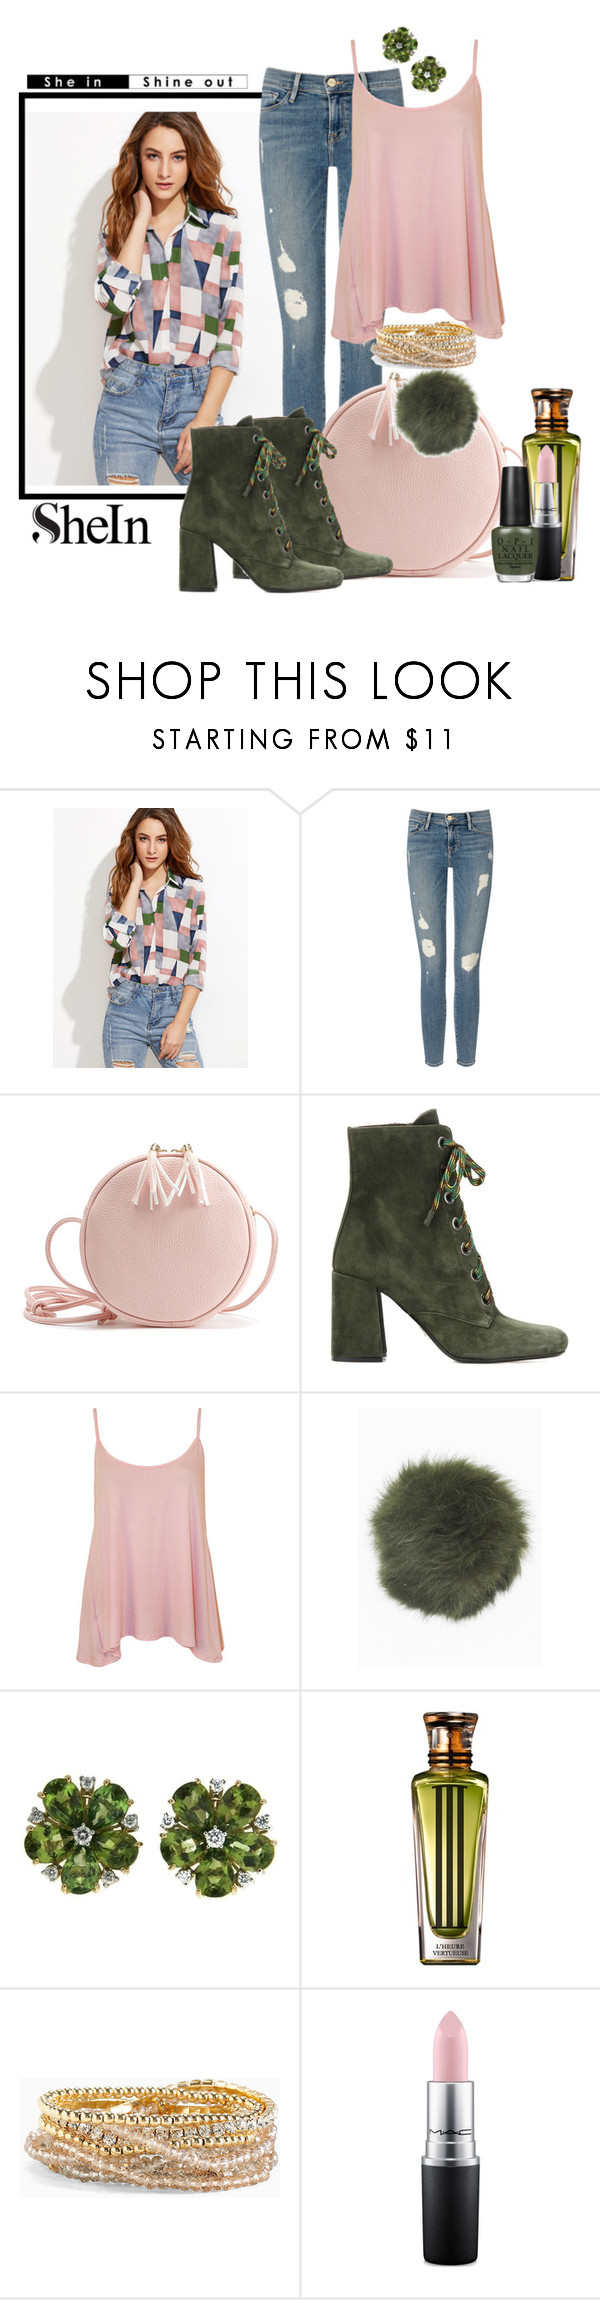 """""""Pink and Green"""" by jckallan ❤ liked on Polyvore featuring Frame Denim, Prada, WearAll, Bobbl, Valentin Magro, Cartier, Torrid and MAC Cosmetics"""